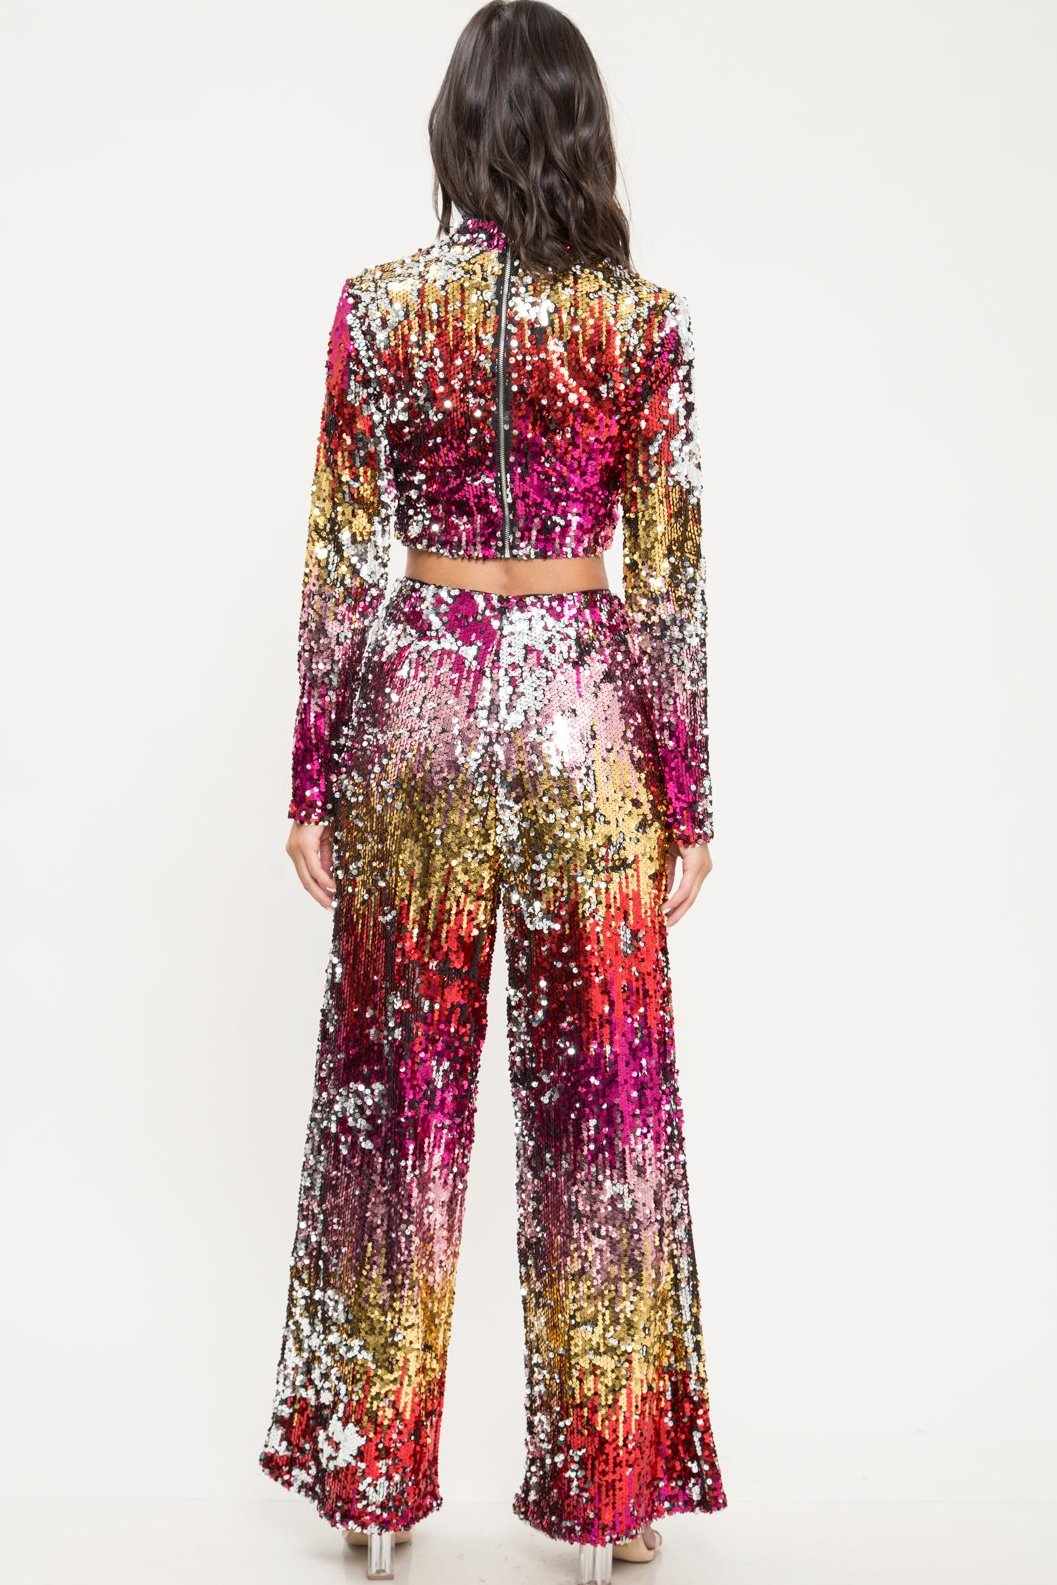 Phoenix Ombre Sequin Pants Set - Geegeebae